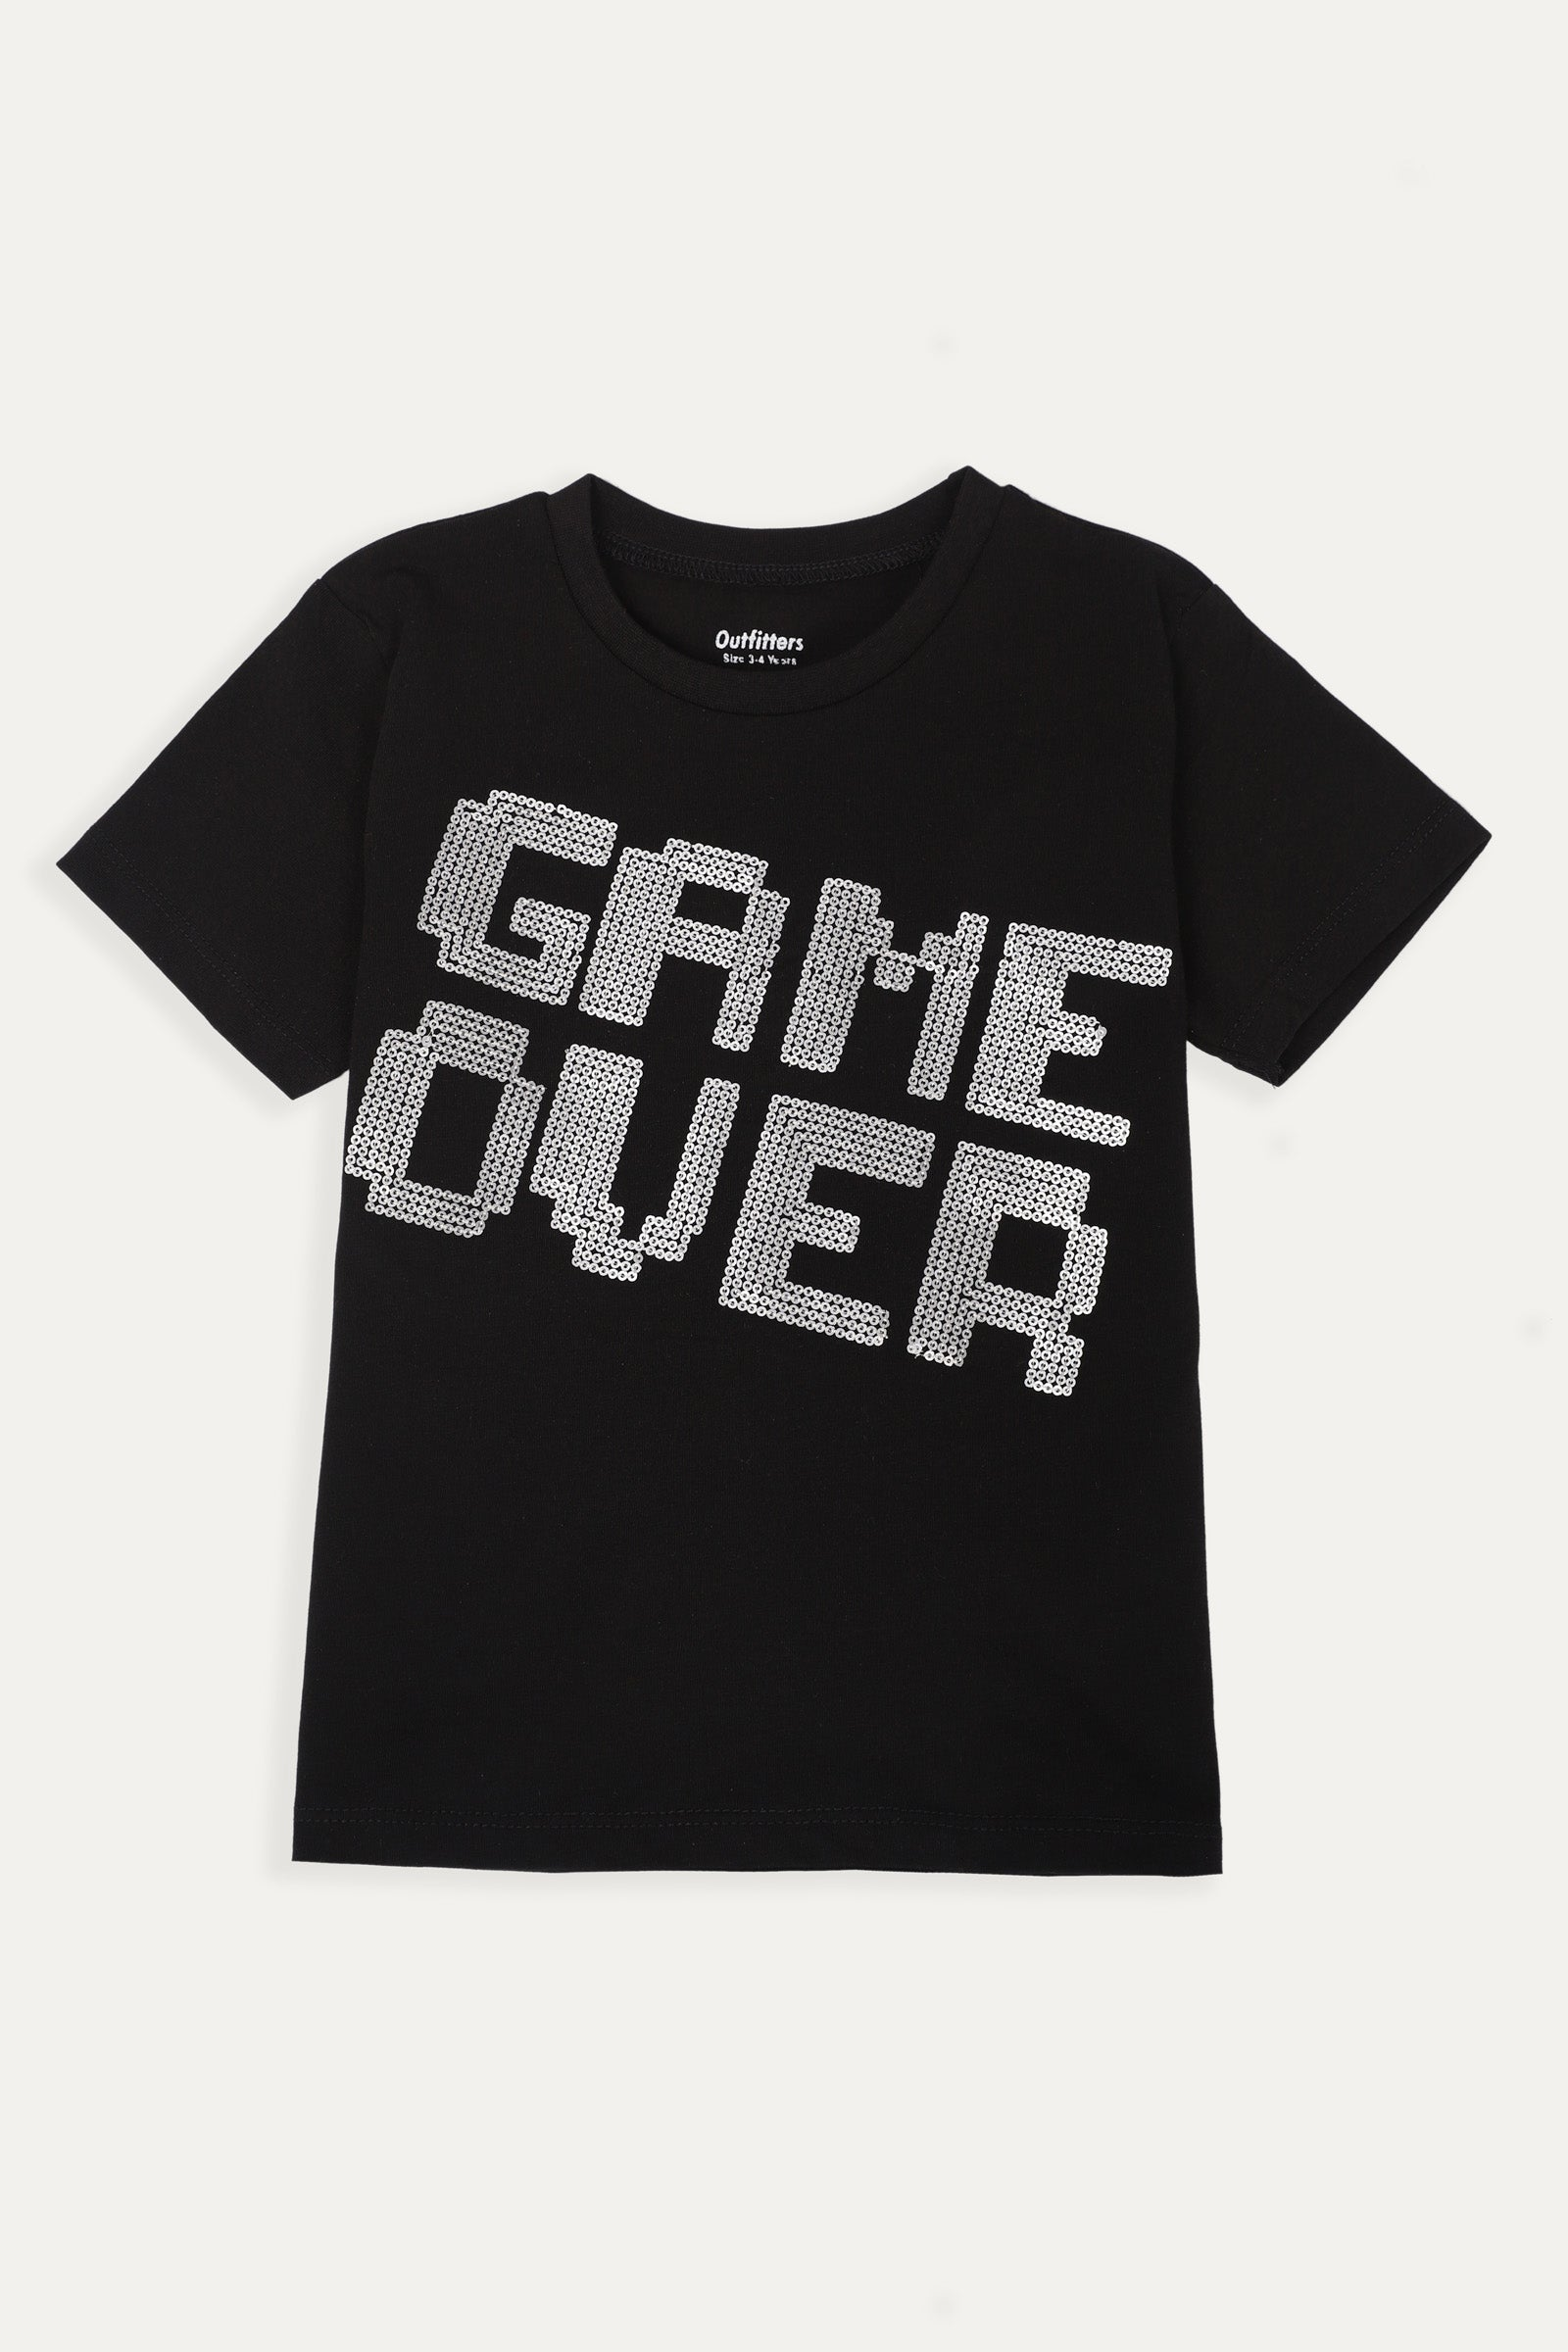 Game Over' T-shirt